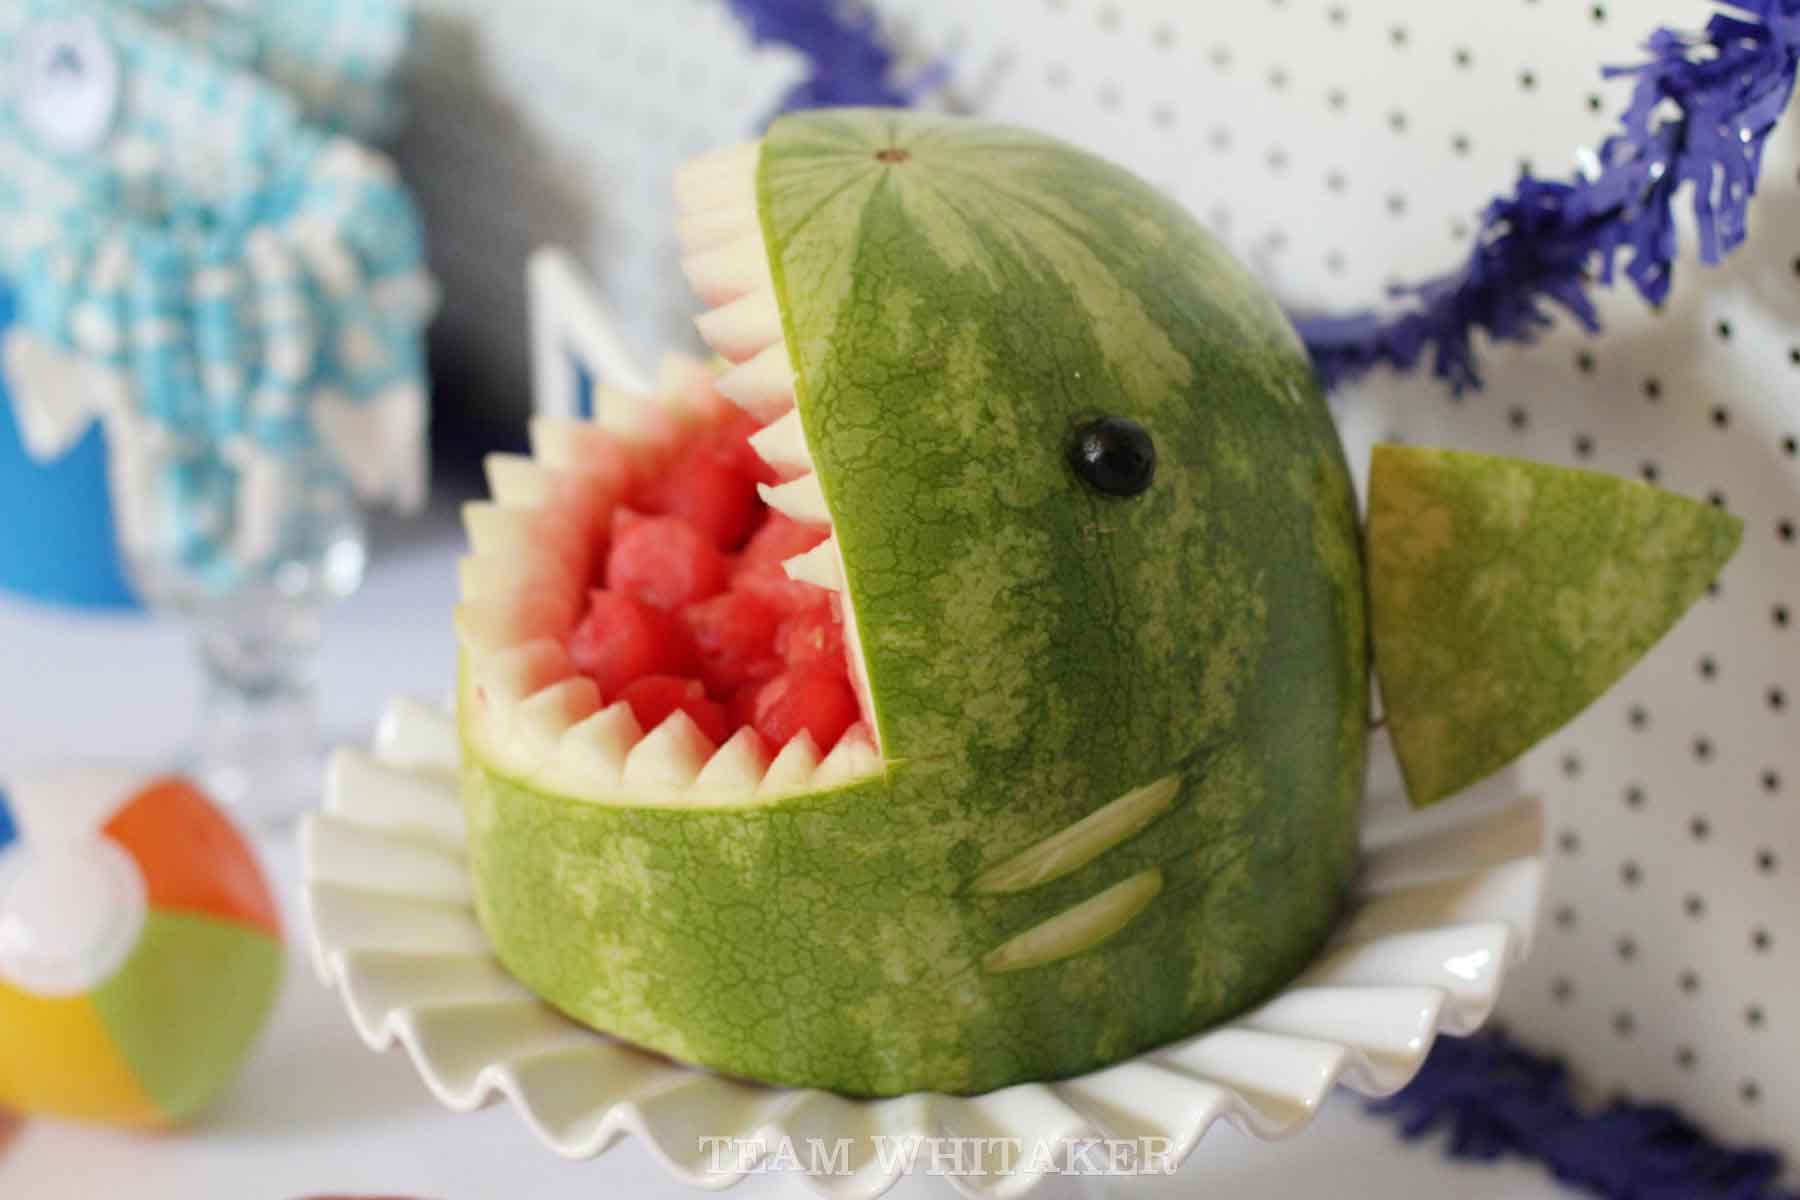 Looking for a fin-tastic birthday theme? This shark birthday party is perfect for the little boy in your life. It's full of creative party favors, shark-themed food and fun water games. Time to get your bite on. Chomp! Chomp!